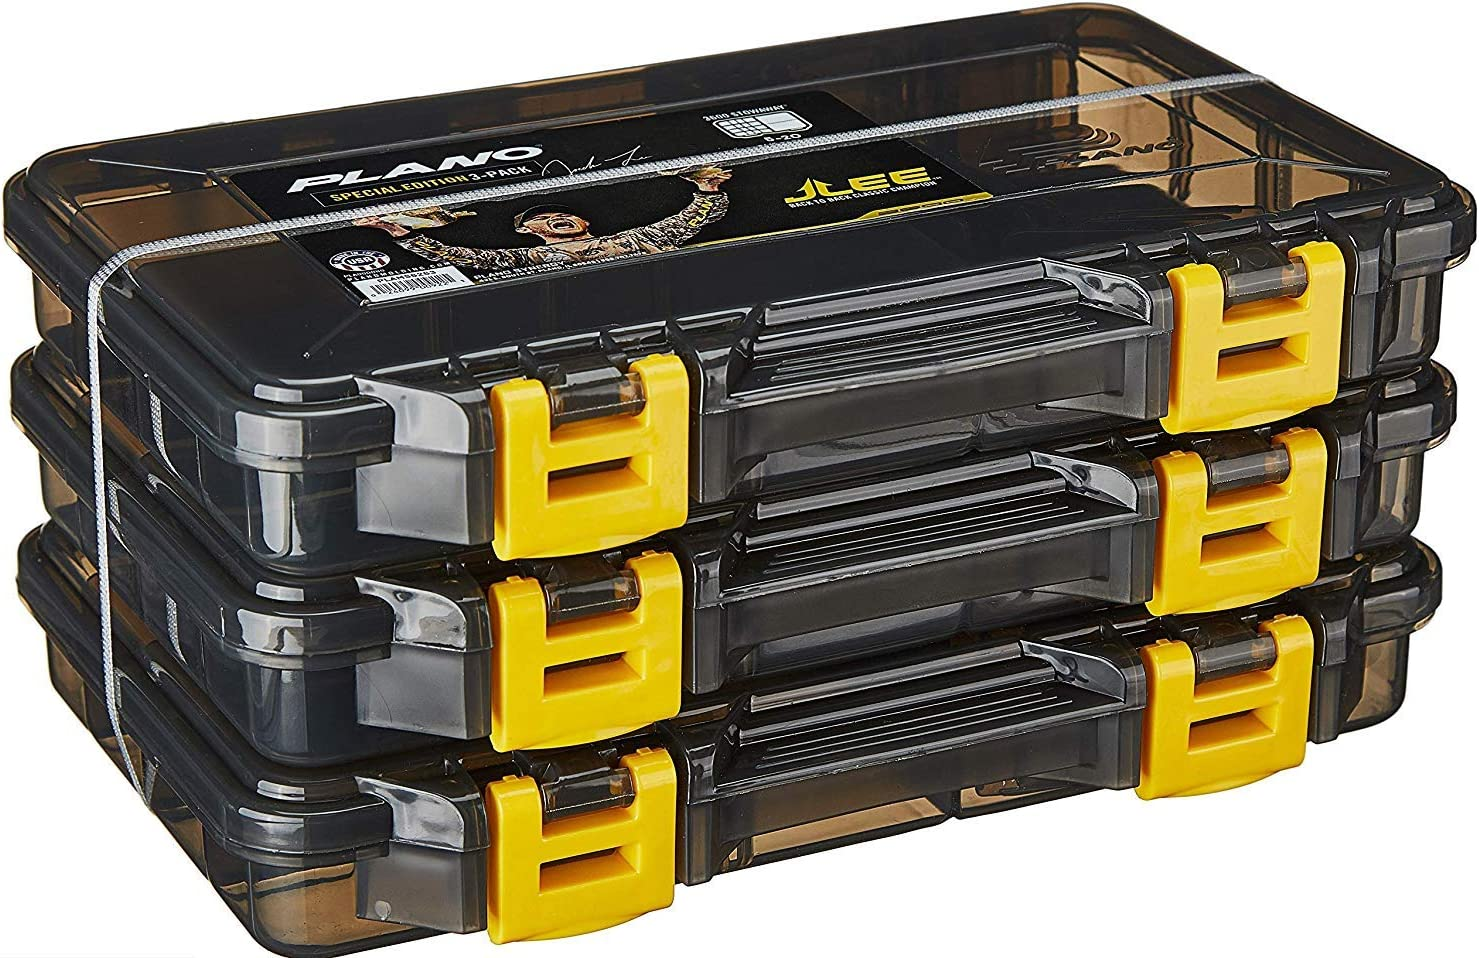 Tackle Or Craft Organizer in a 3 Pack 3600 Stowaway Storage Box with Dividers 5-20, JLee Special Edition